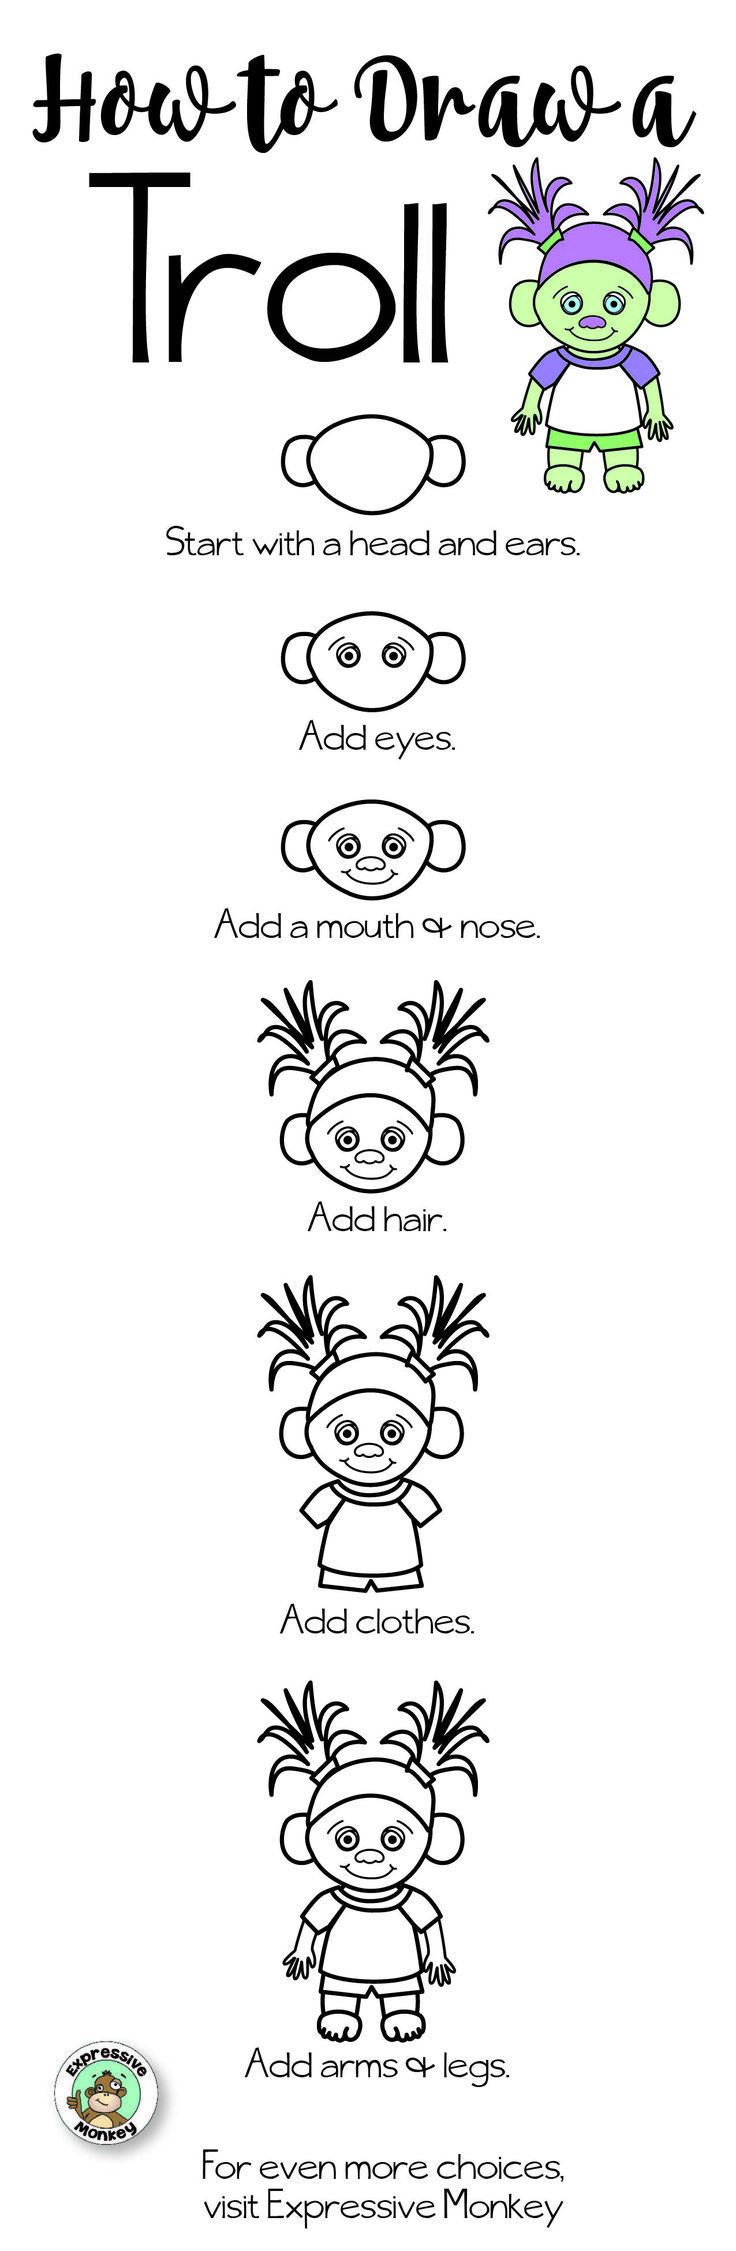 Free drawing set how to draw a troll from expressive monkey 3 free drawing set how to draw a troll from expressive monkey 3 different drawing ccuart Gallery